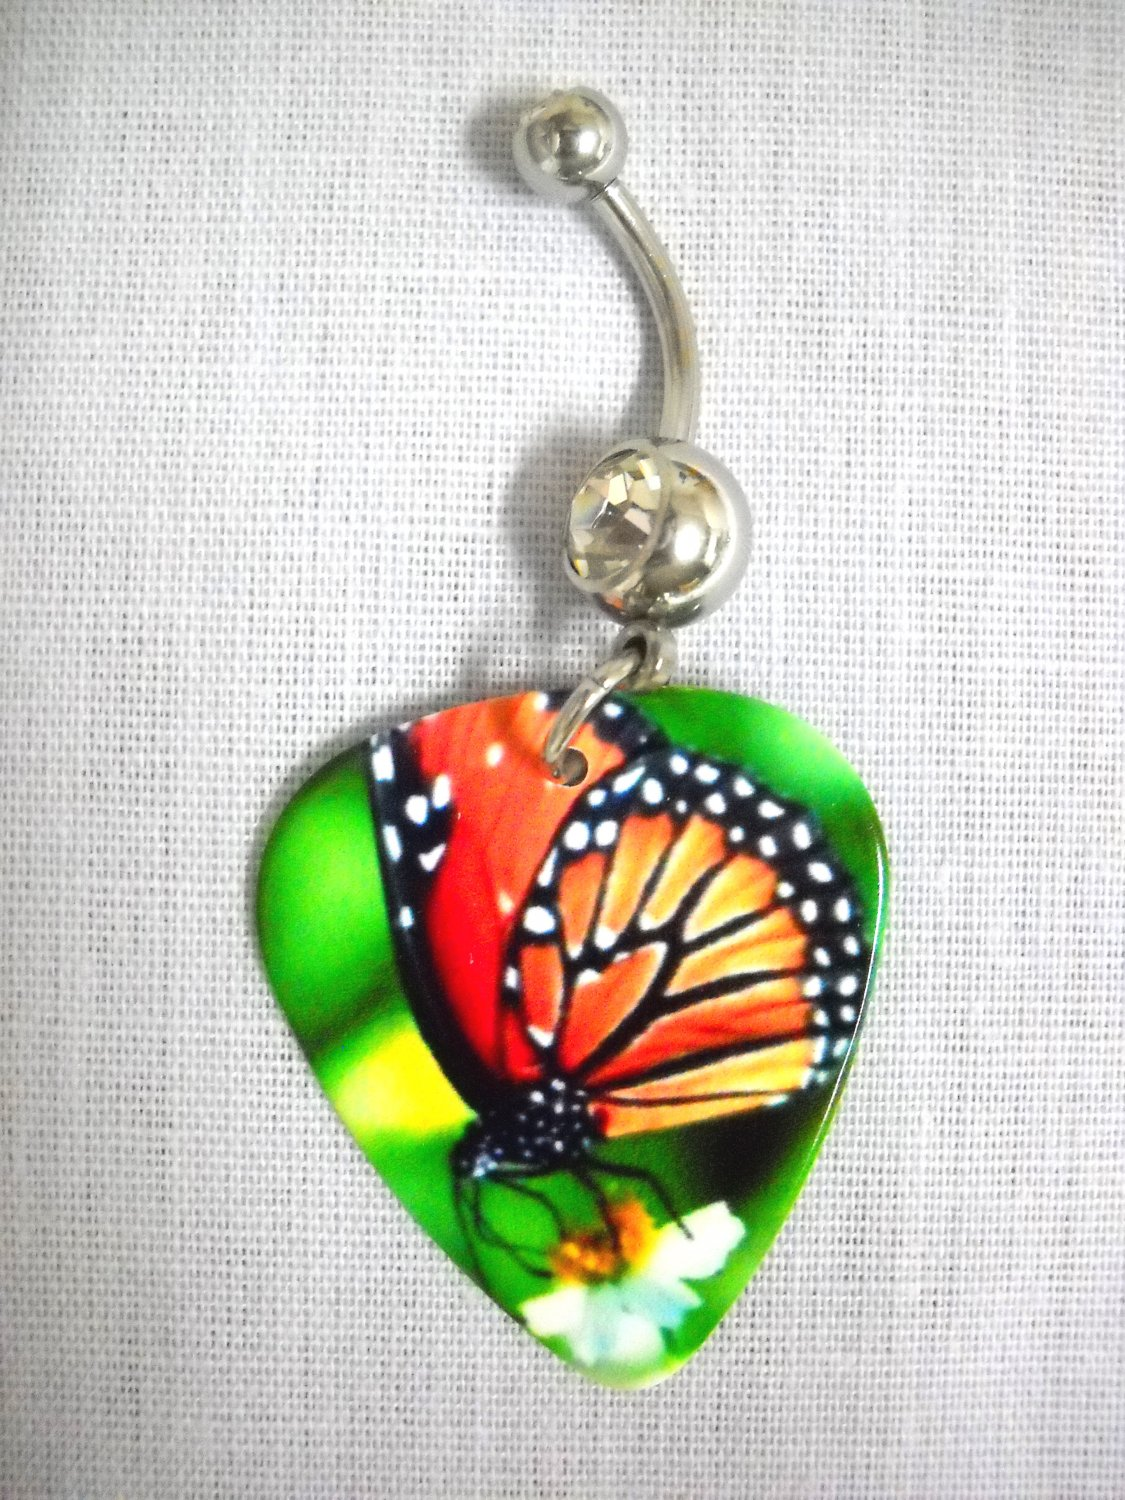 BRIGHT MONARCH BUTTERFLY PHOTO GUITAR PICK 14g CLEAR CZ BELLY RING BUTTERFLIES